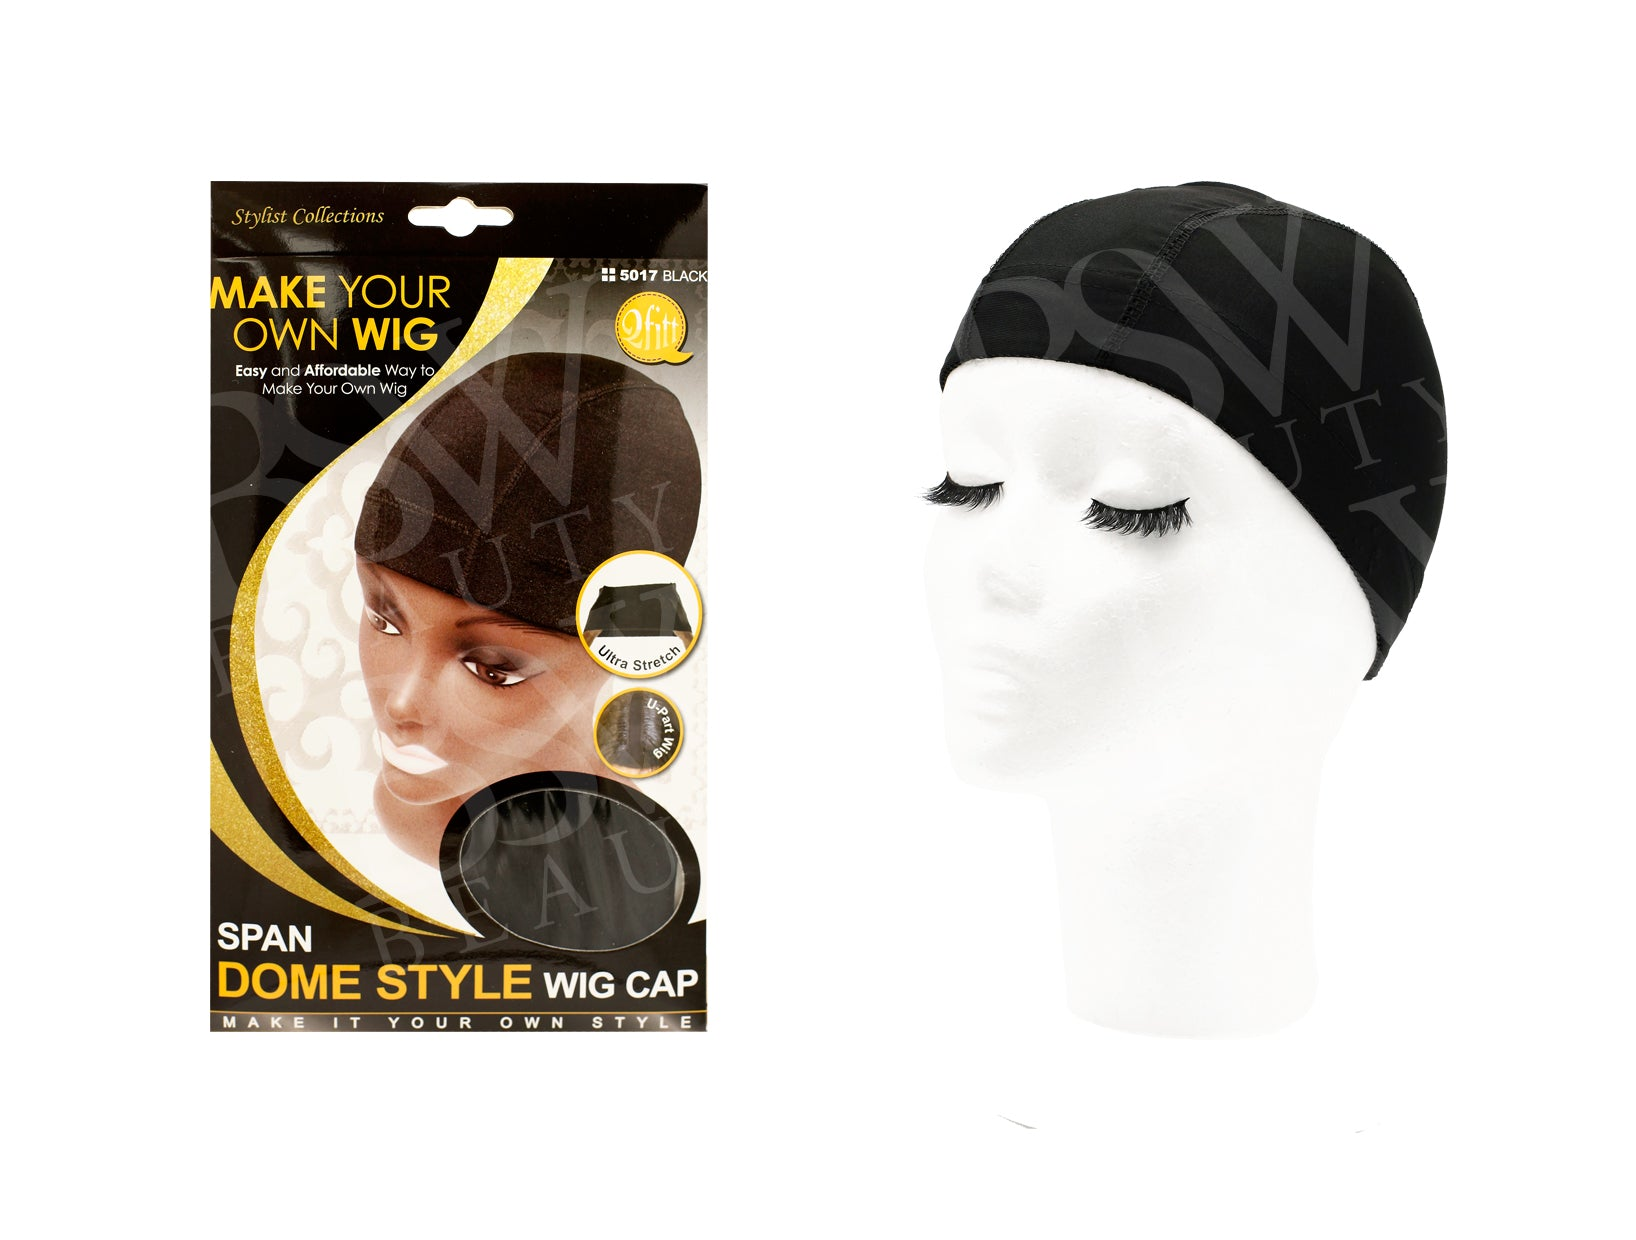 Qfitt Span Dome Style Wig Cap 5017 Black Bsw Beauty Canada